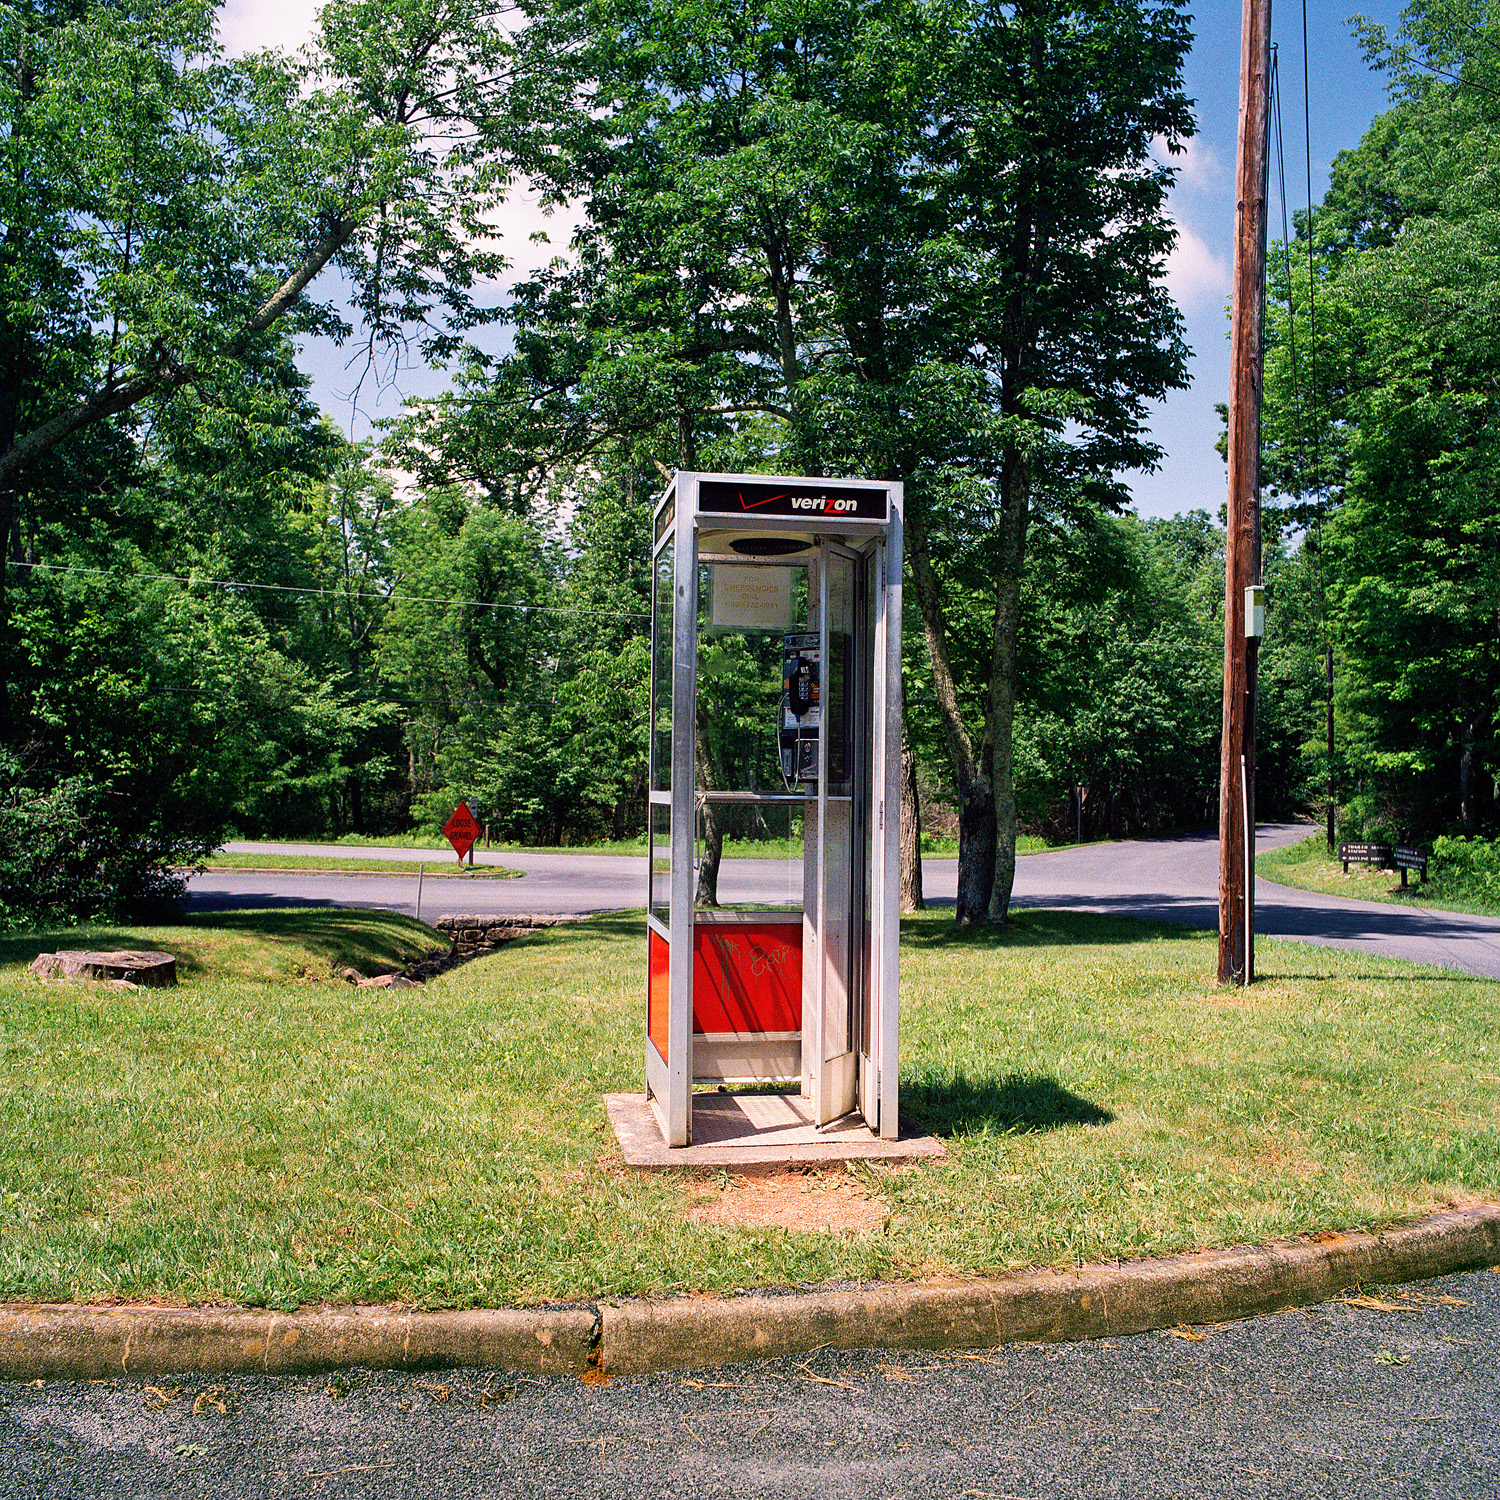 05_Parklife_Shenandoah_PhoneBooth.jpg